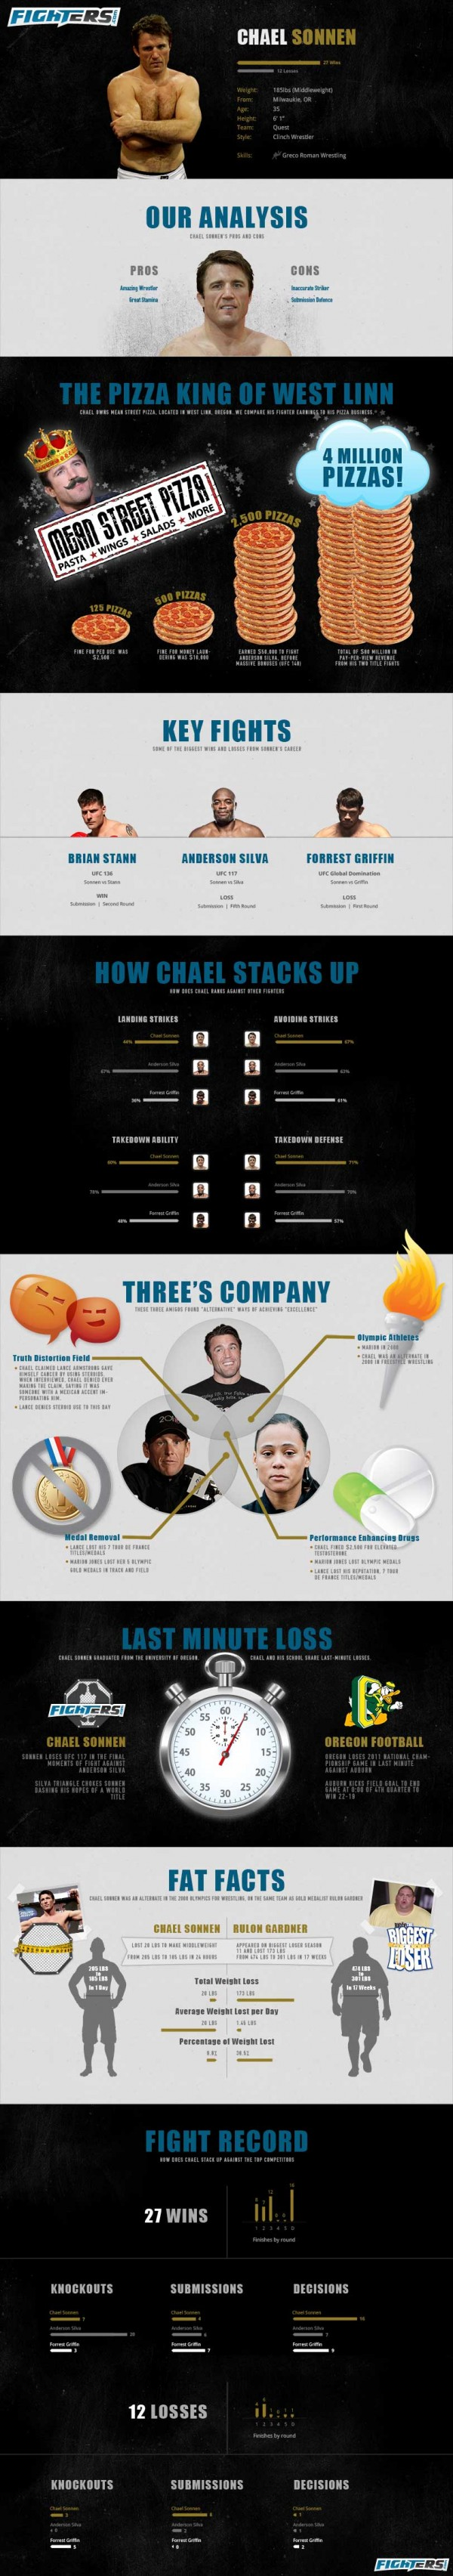 fighters infographic chael sonnen scaled e1352843719390